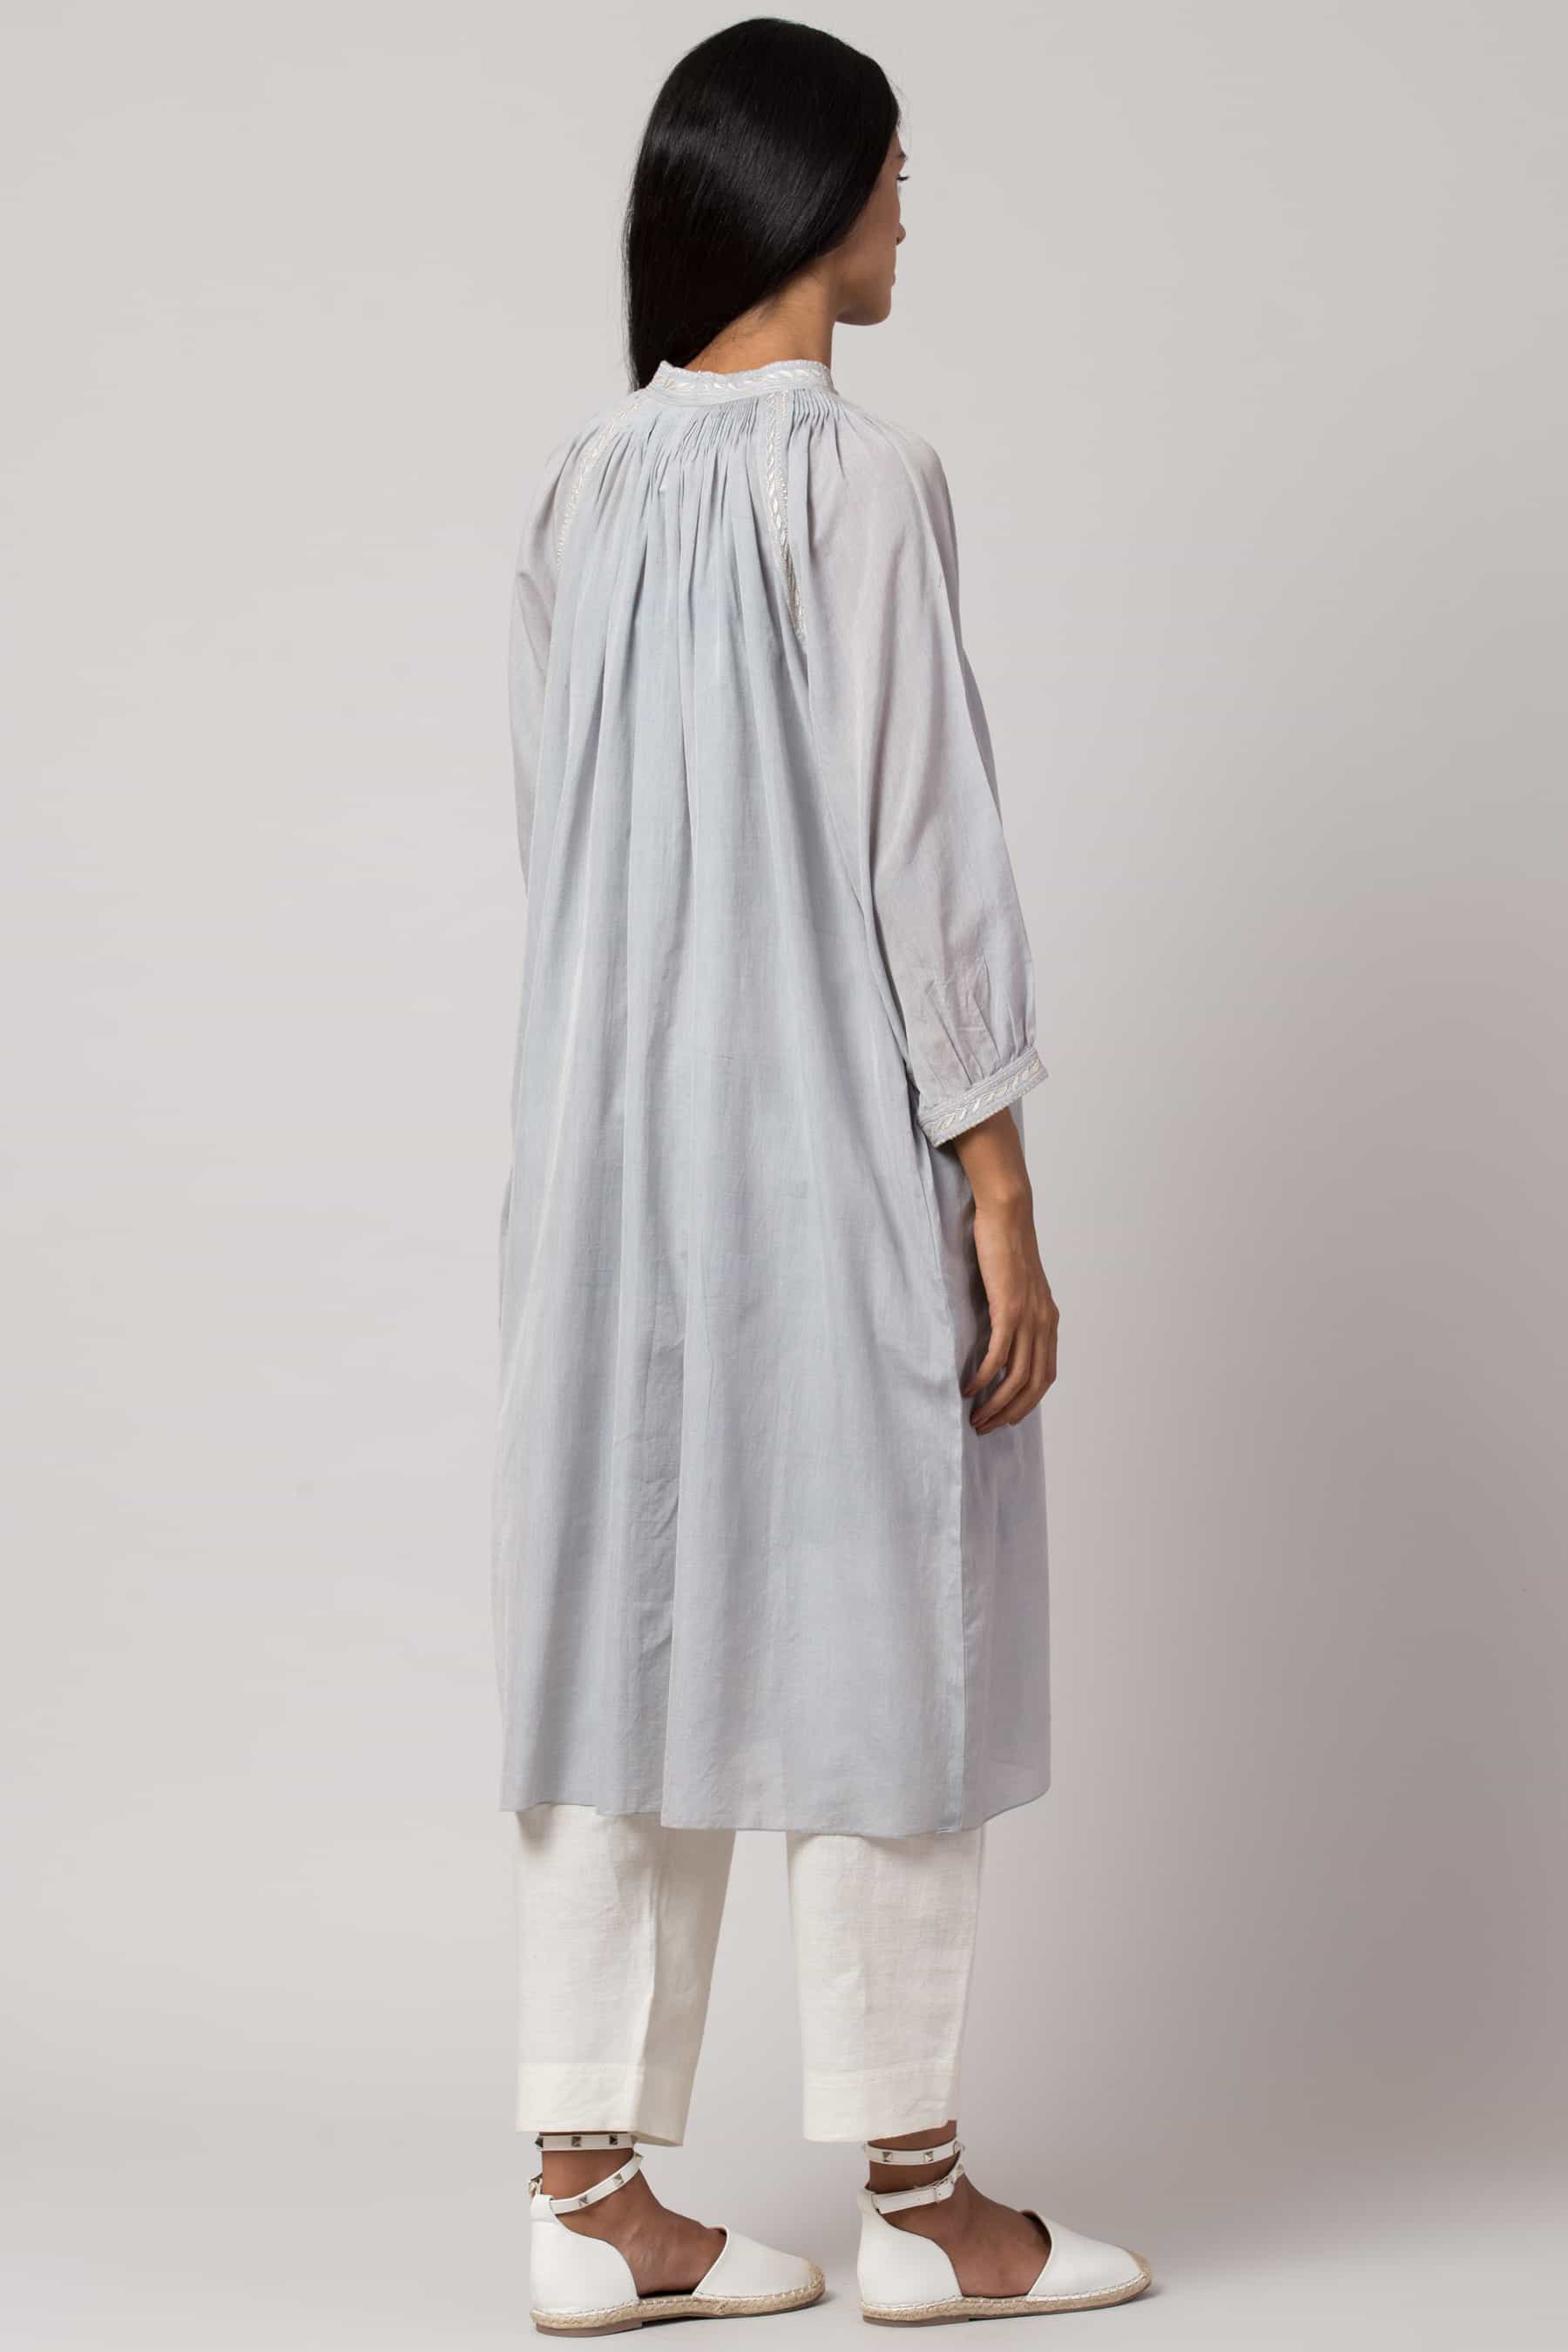 Baby blue Chikankari tunic made in 100% handwoven yarn dyed cotton Chanderi - back